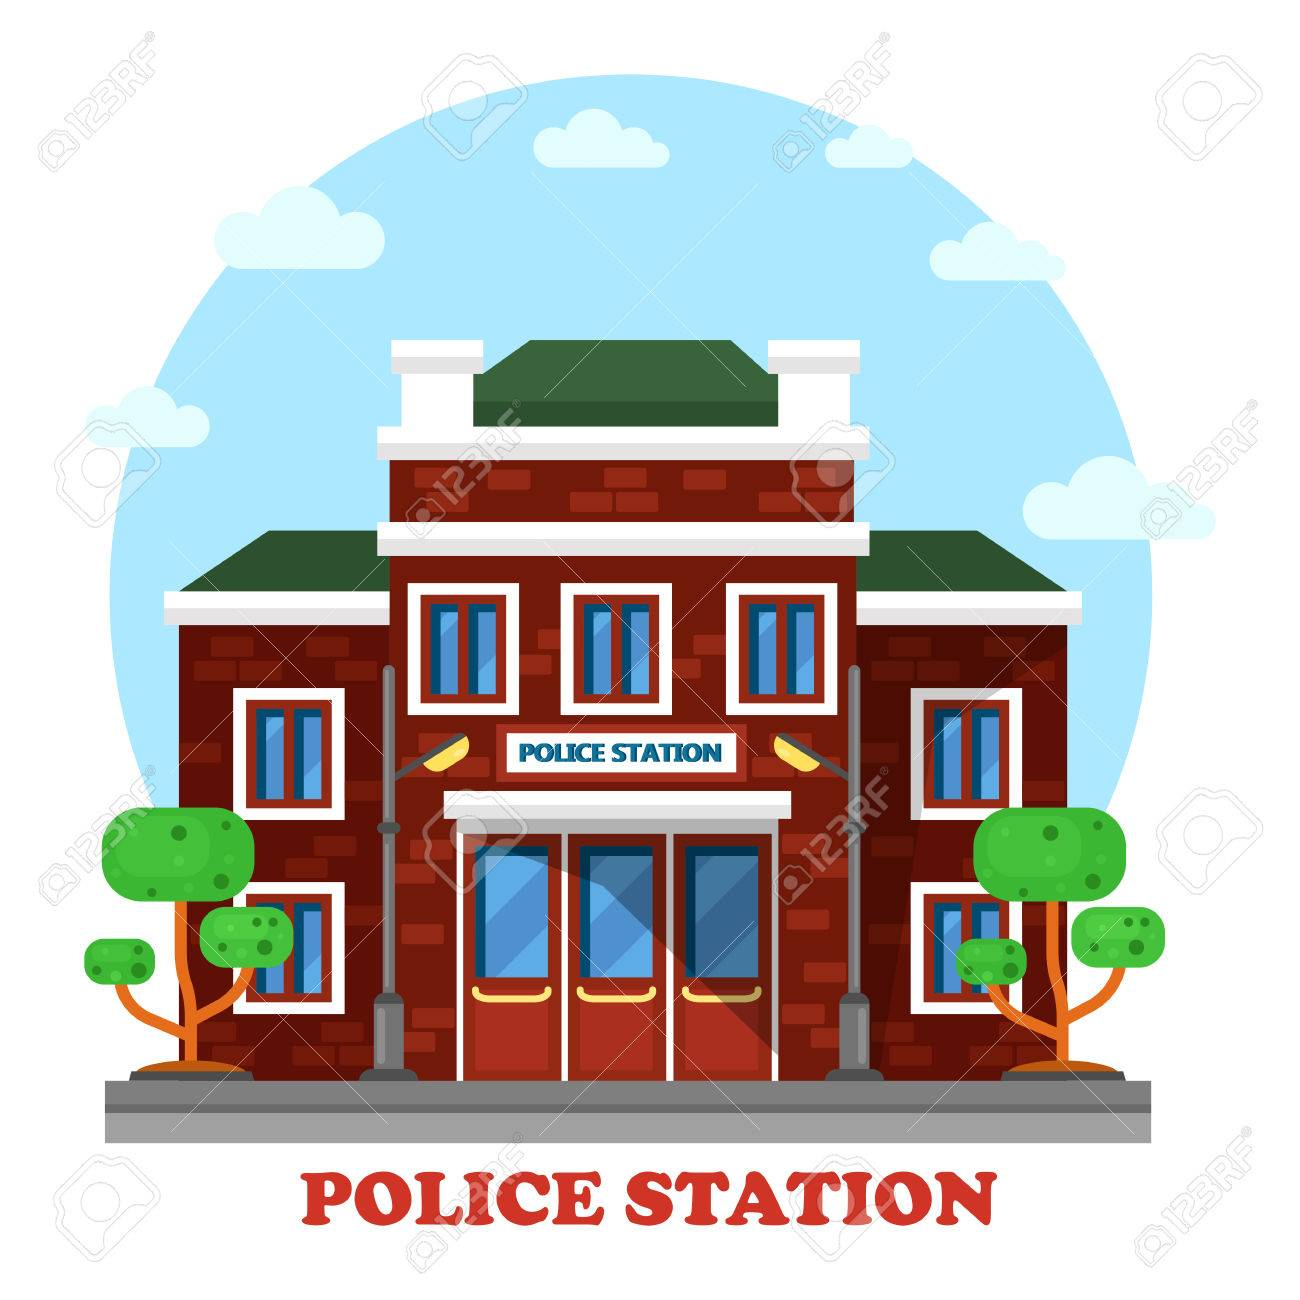 Police station clipart  Outdoor Exterior View On Police Station Building. Municipal ...